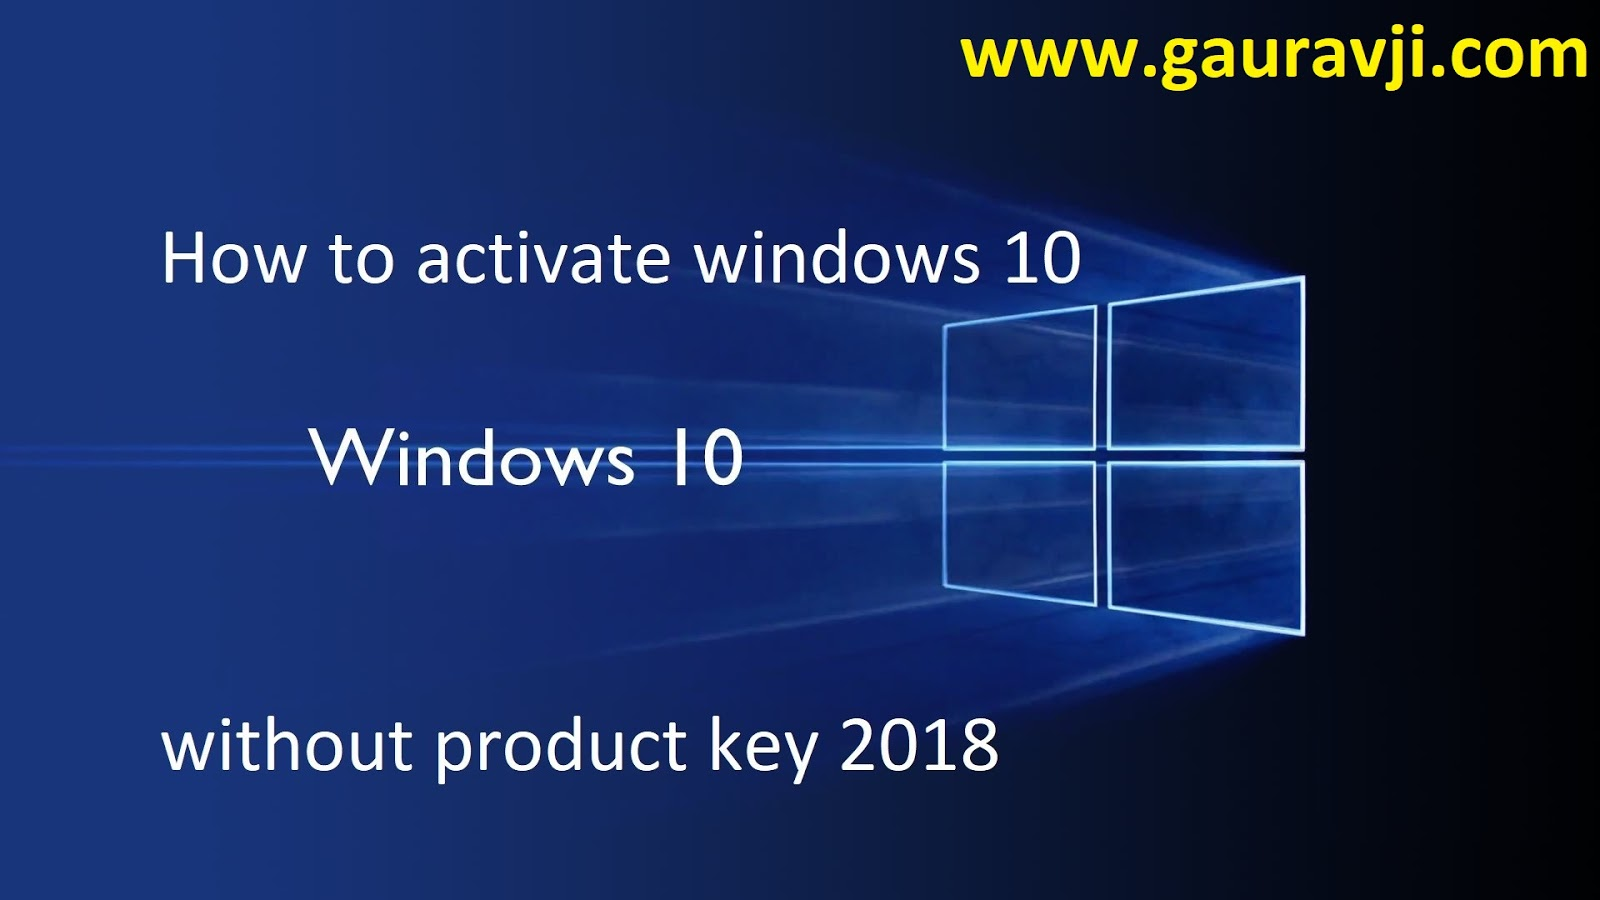 Activate windows os for free gauravji tech blog see detailed instructions on opening the command prompt as an administrator in windows operating system activation process of windows os step by step ccuart Choice Image